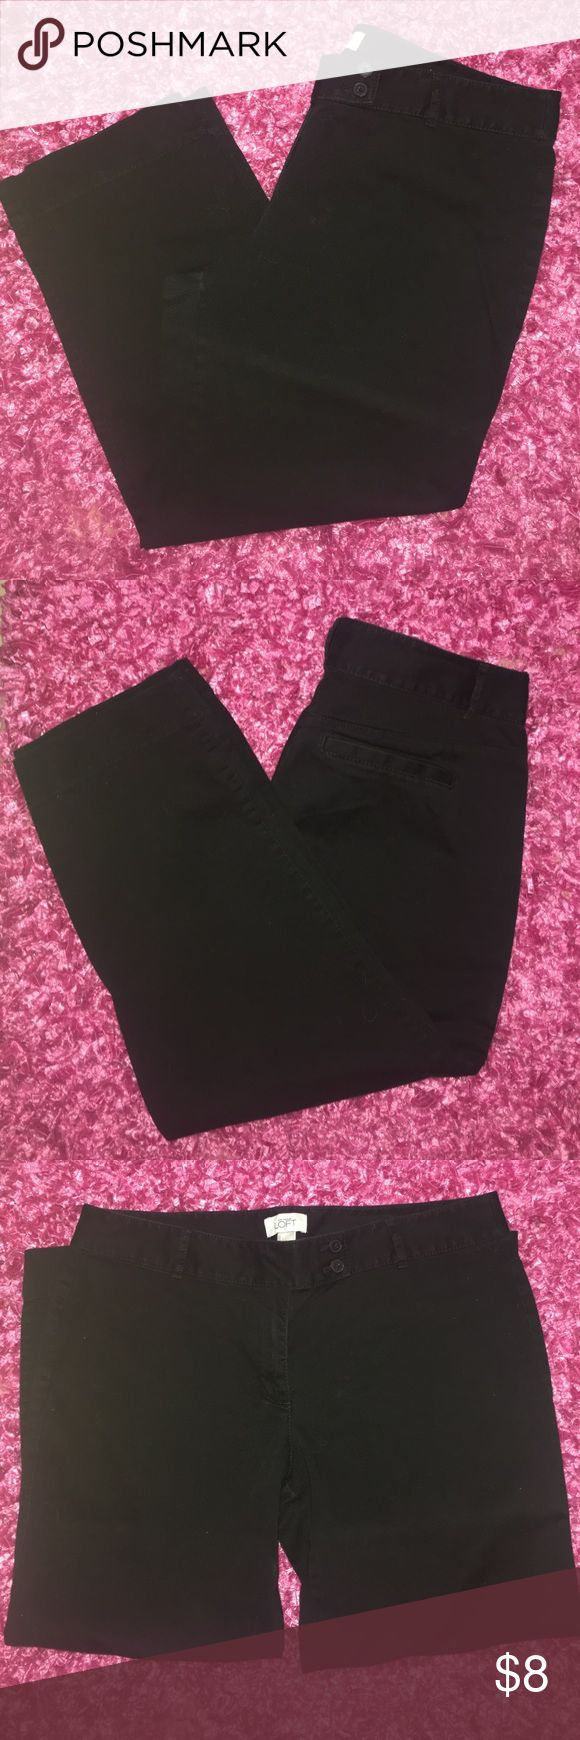 """Loft black ankle pants. These are black Loft pants. To some might fit as ankle pants with a little bell bottom. I'm 5""""2 and they fit like ankle pants. Good condition. Size 12. LOFT Pants Ankle & Cropped"""